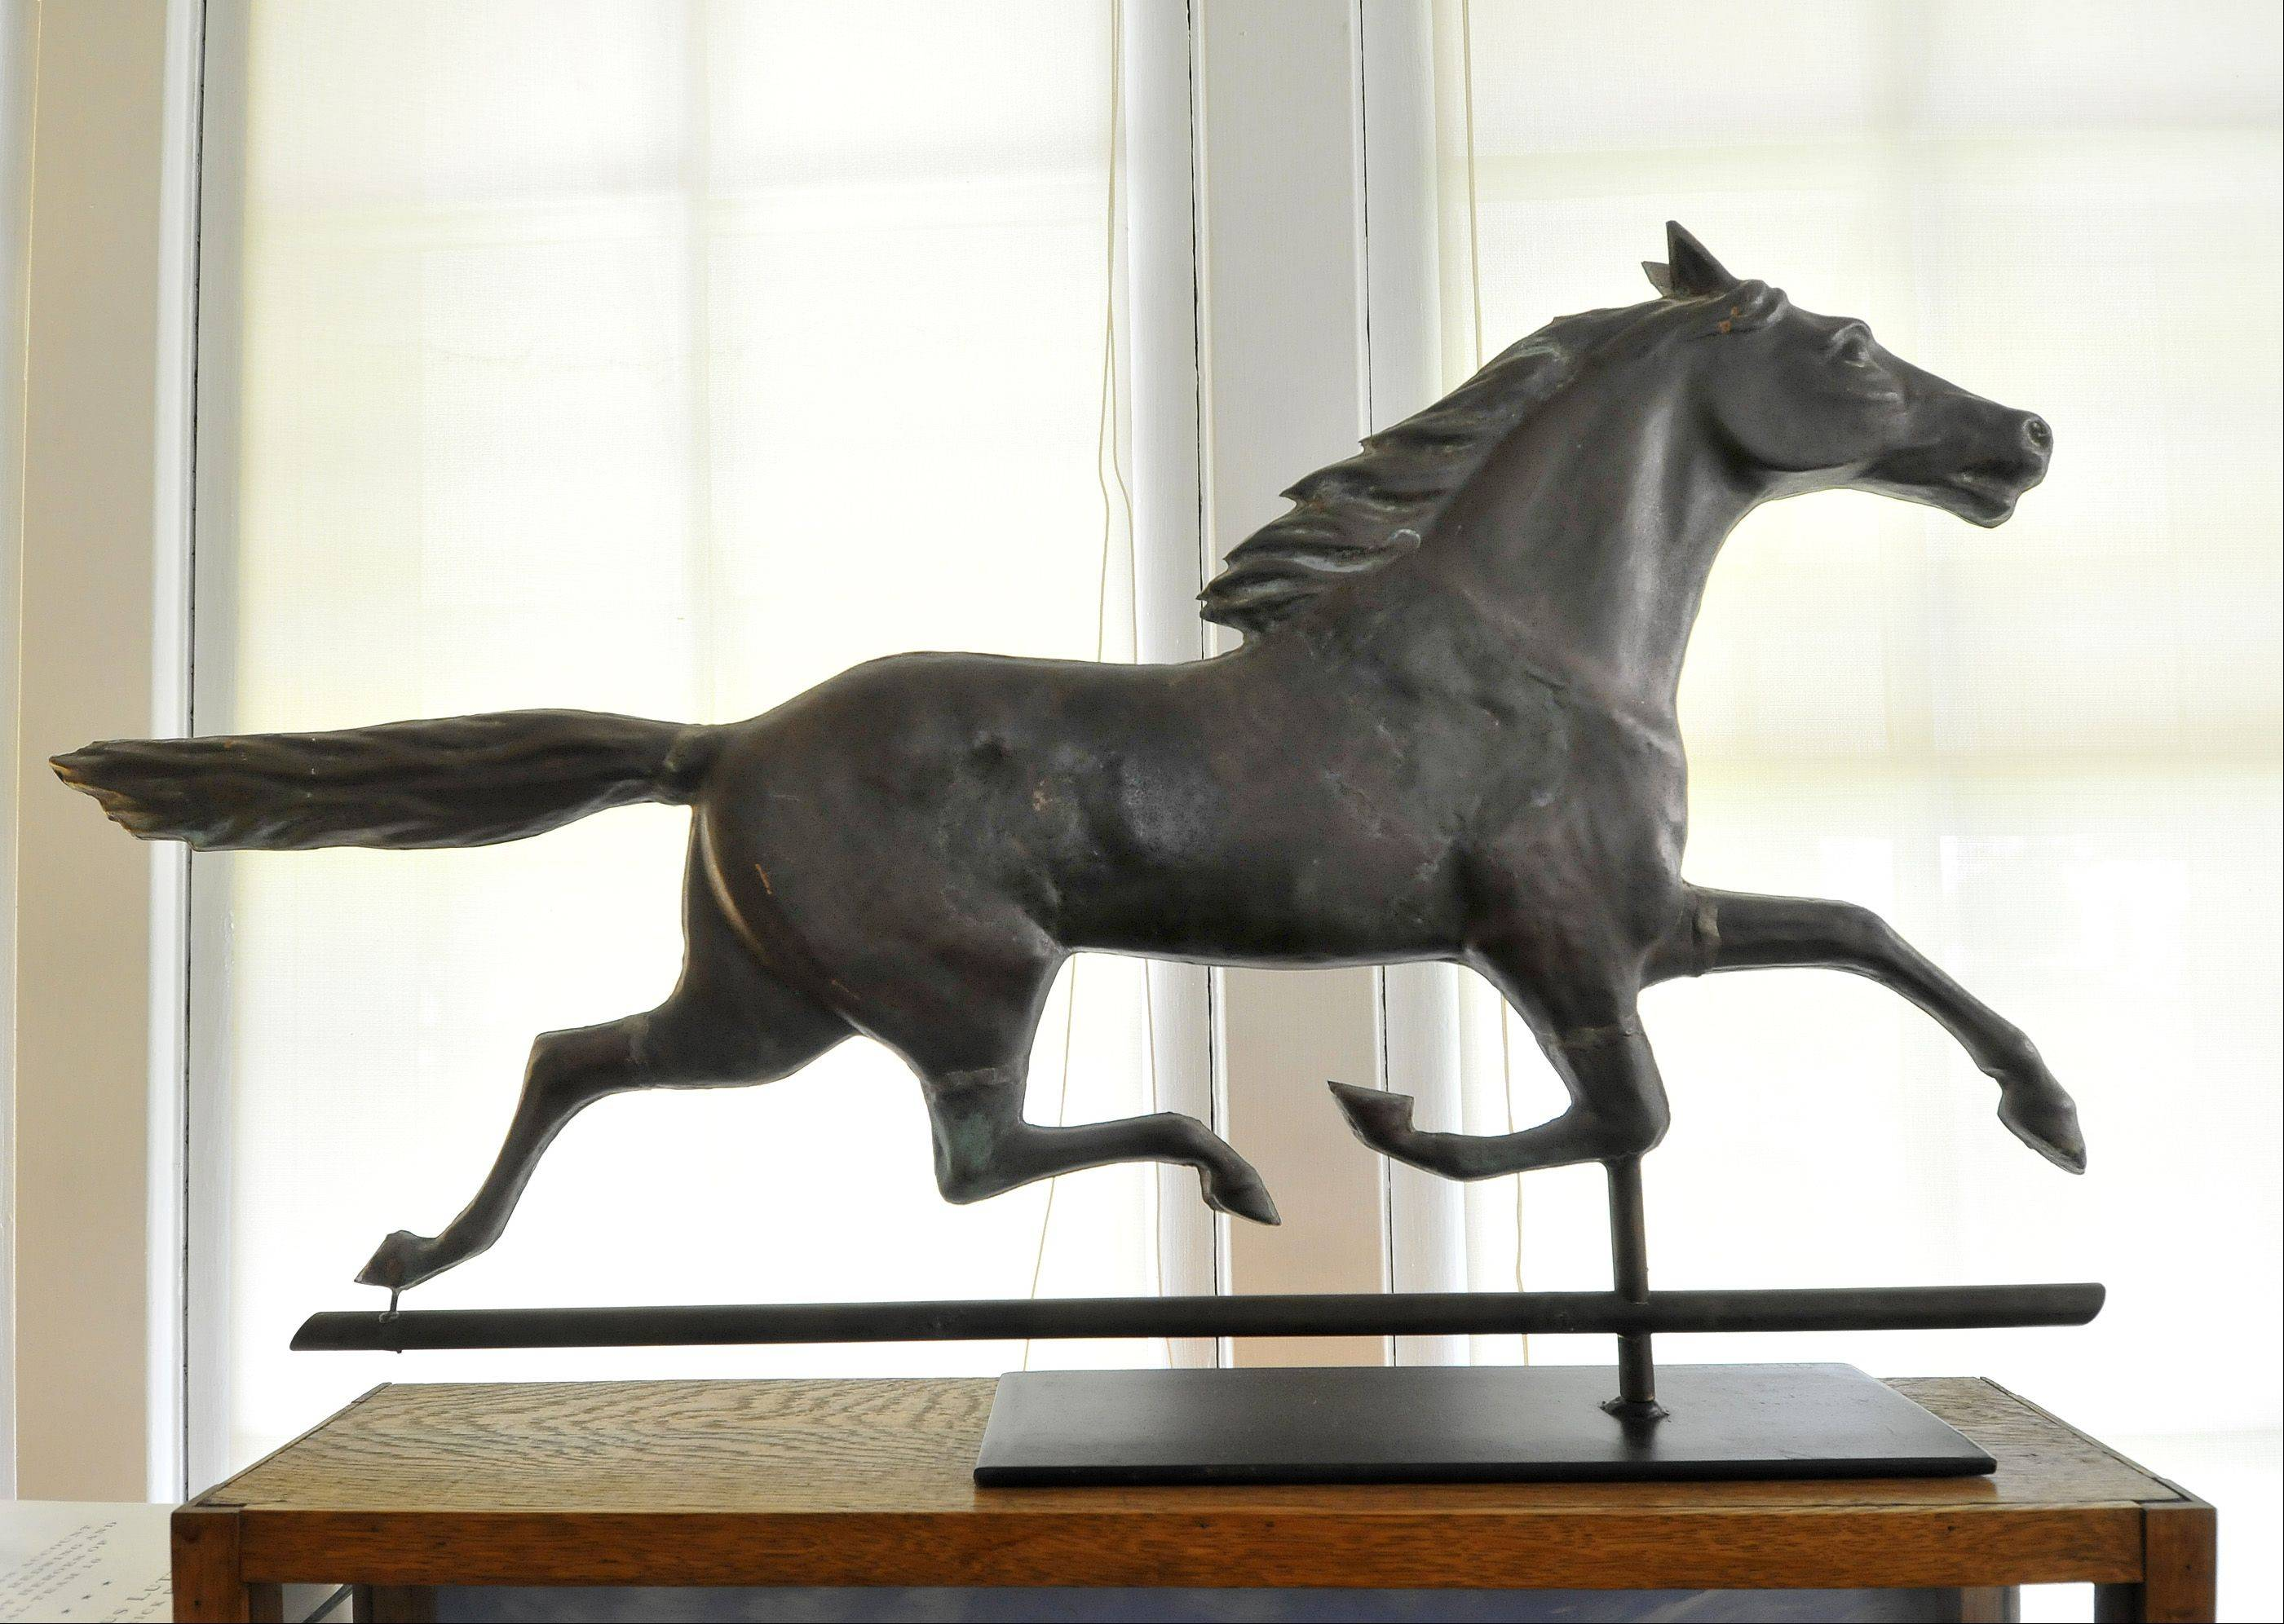 This Ethan Allen weather vane from about 1890 rests in the Larsen's kitchen, along with many other antiques from the 19th century.